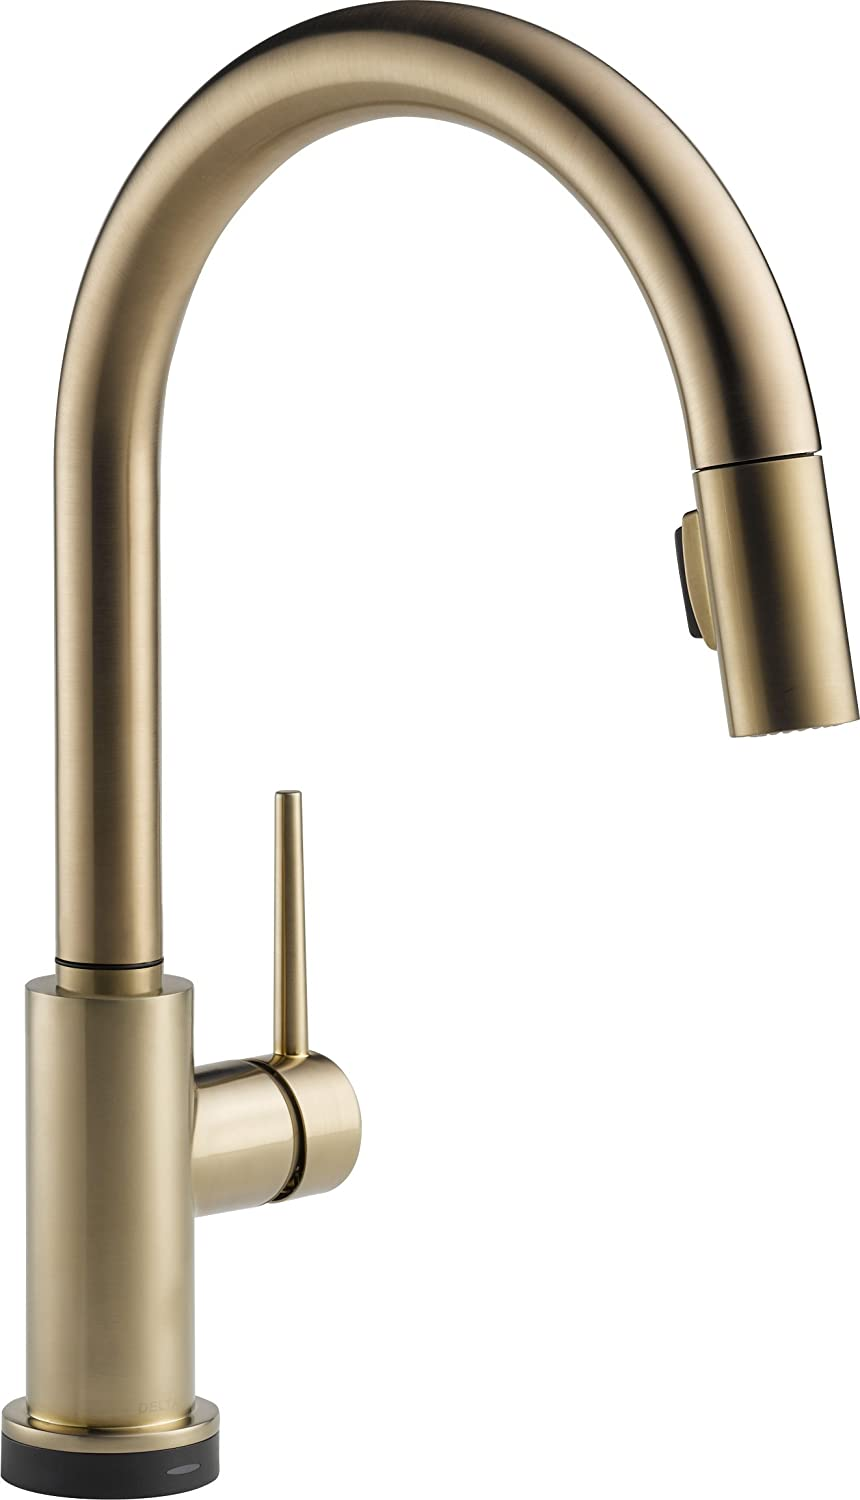 Delta Faucet Trinsic Single Handle Touch Kitchen Sink Faucet With Pull Down Sprayer Touch2o Technology And Magnetic Docking Spray Head Champagne